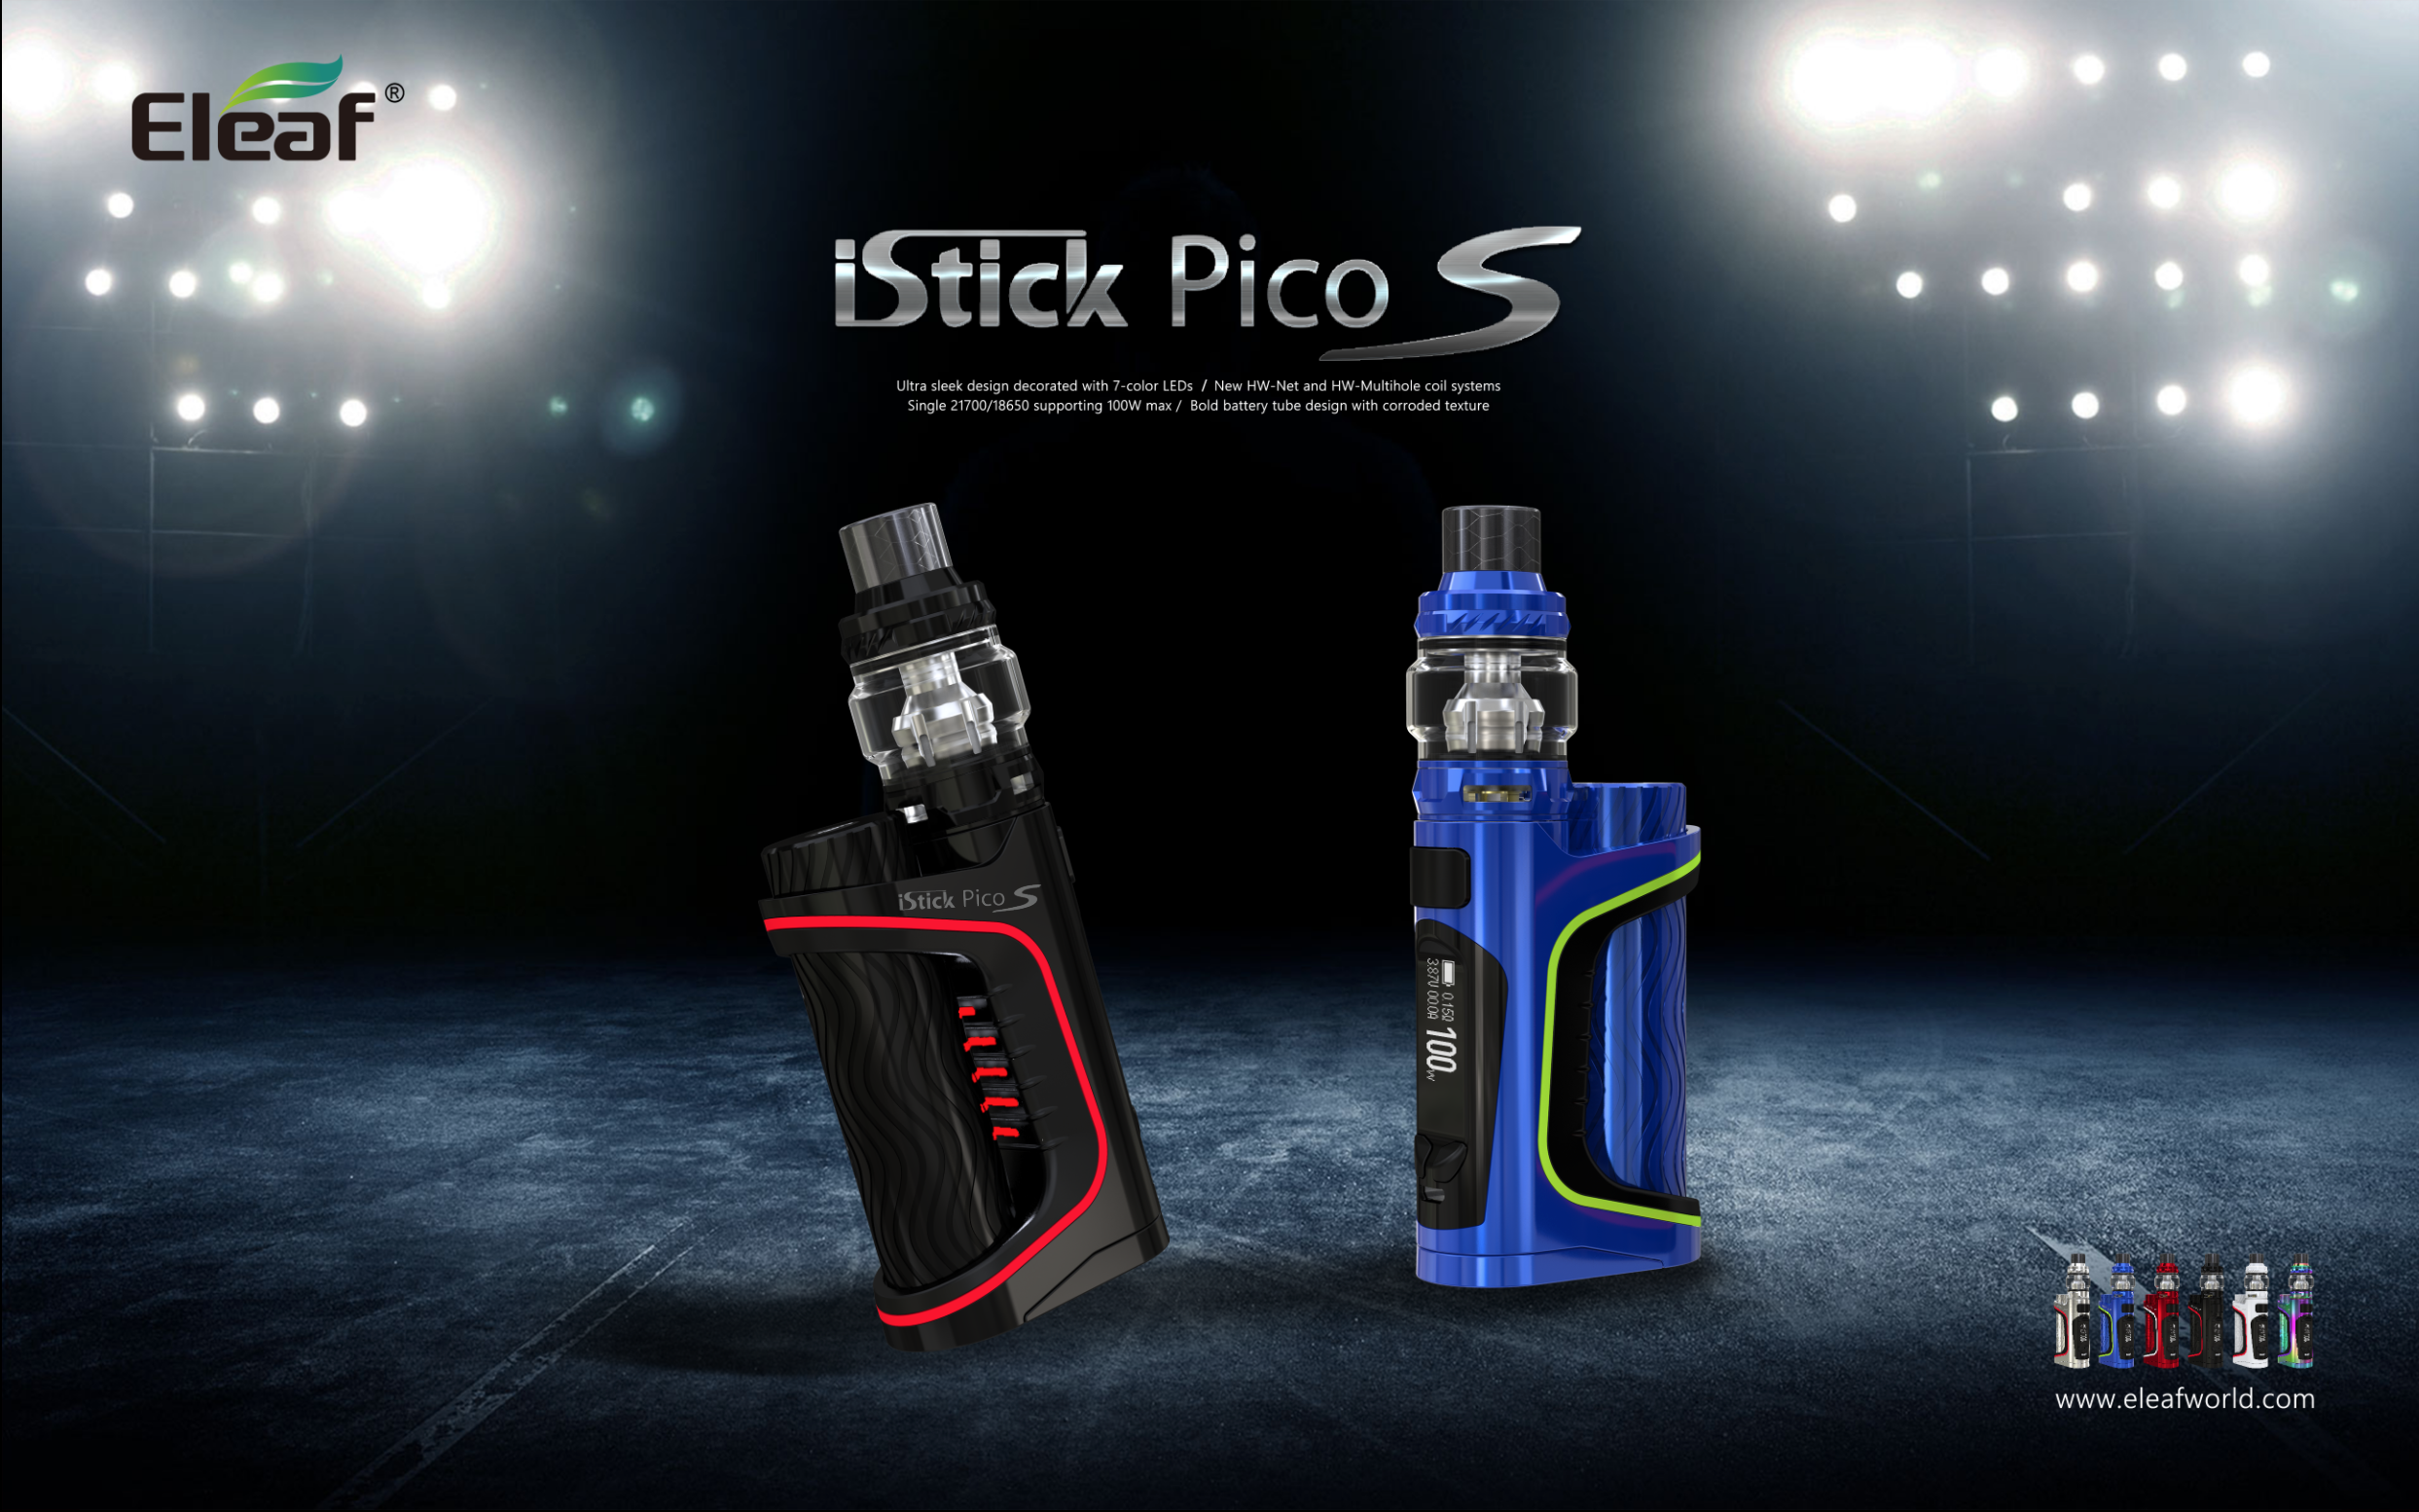 Welcome the new iStick Pico S with ELLO VATE Atomizer to the Eleaf